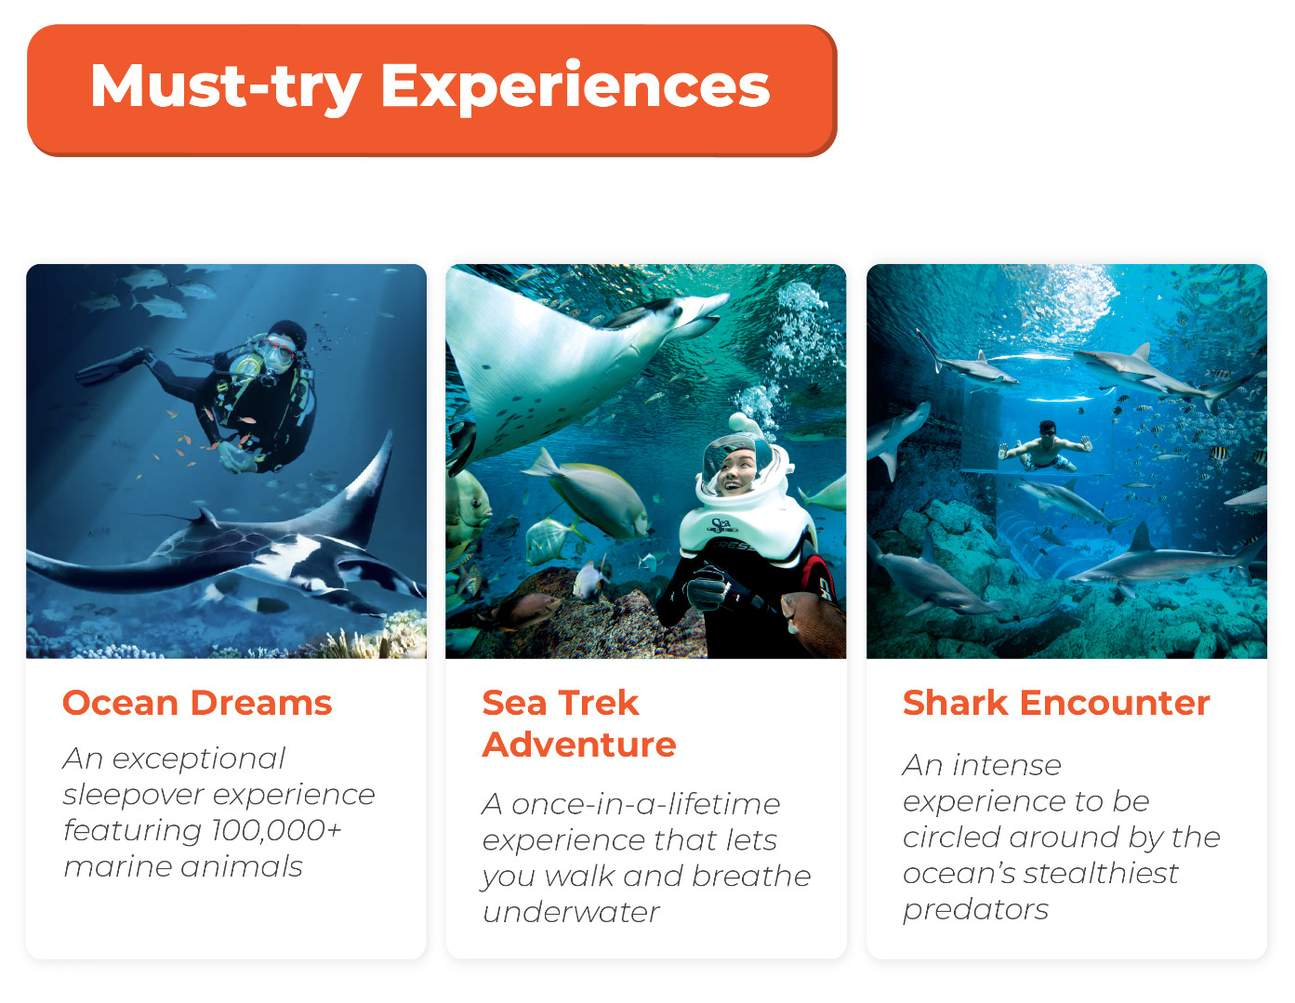 must-try experiences at sea aquarium sentosa